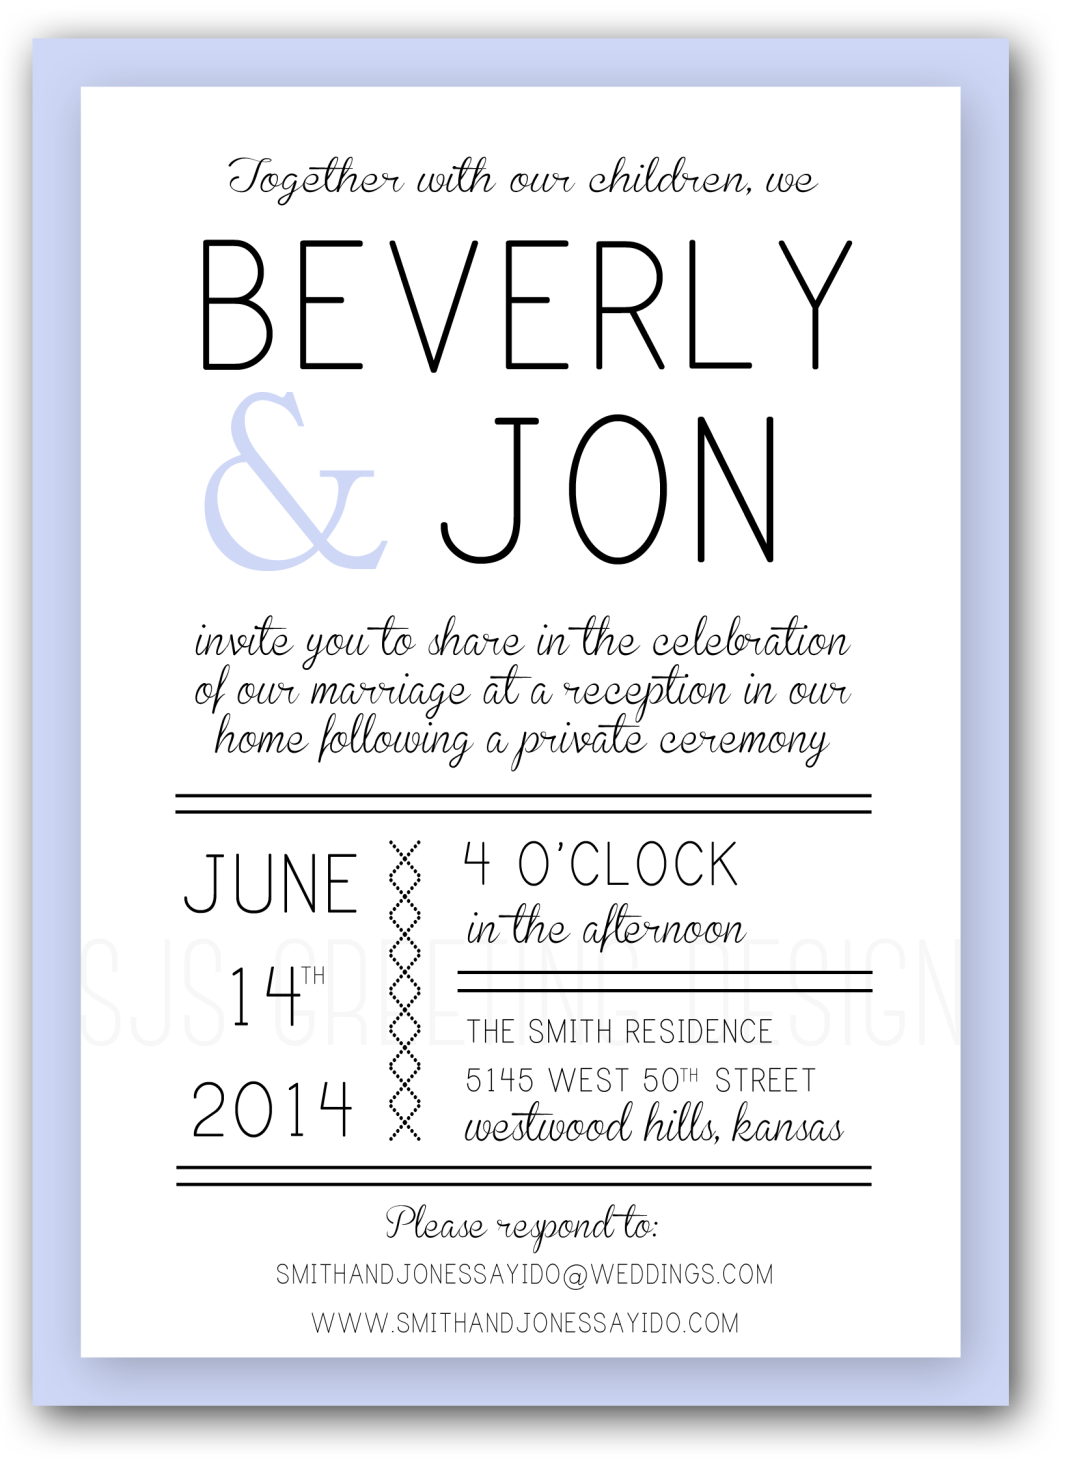 BEVERLY WEDDING